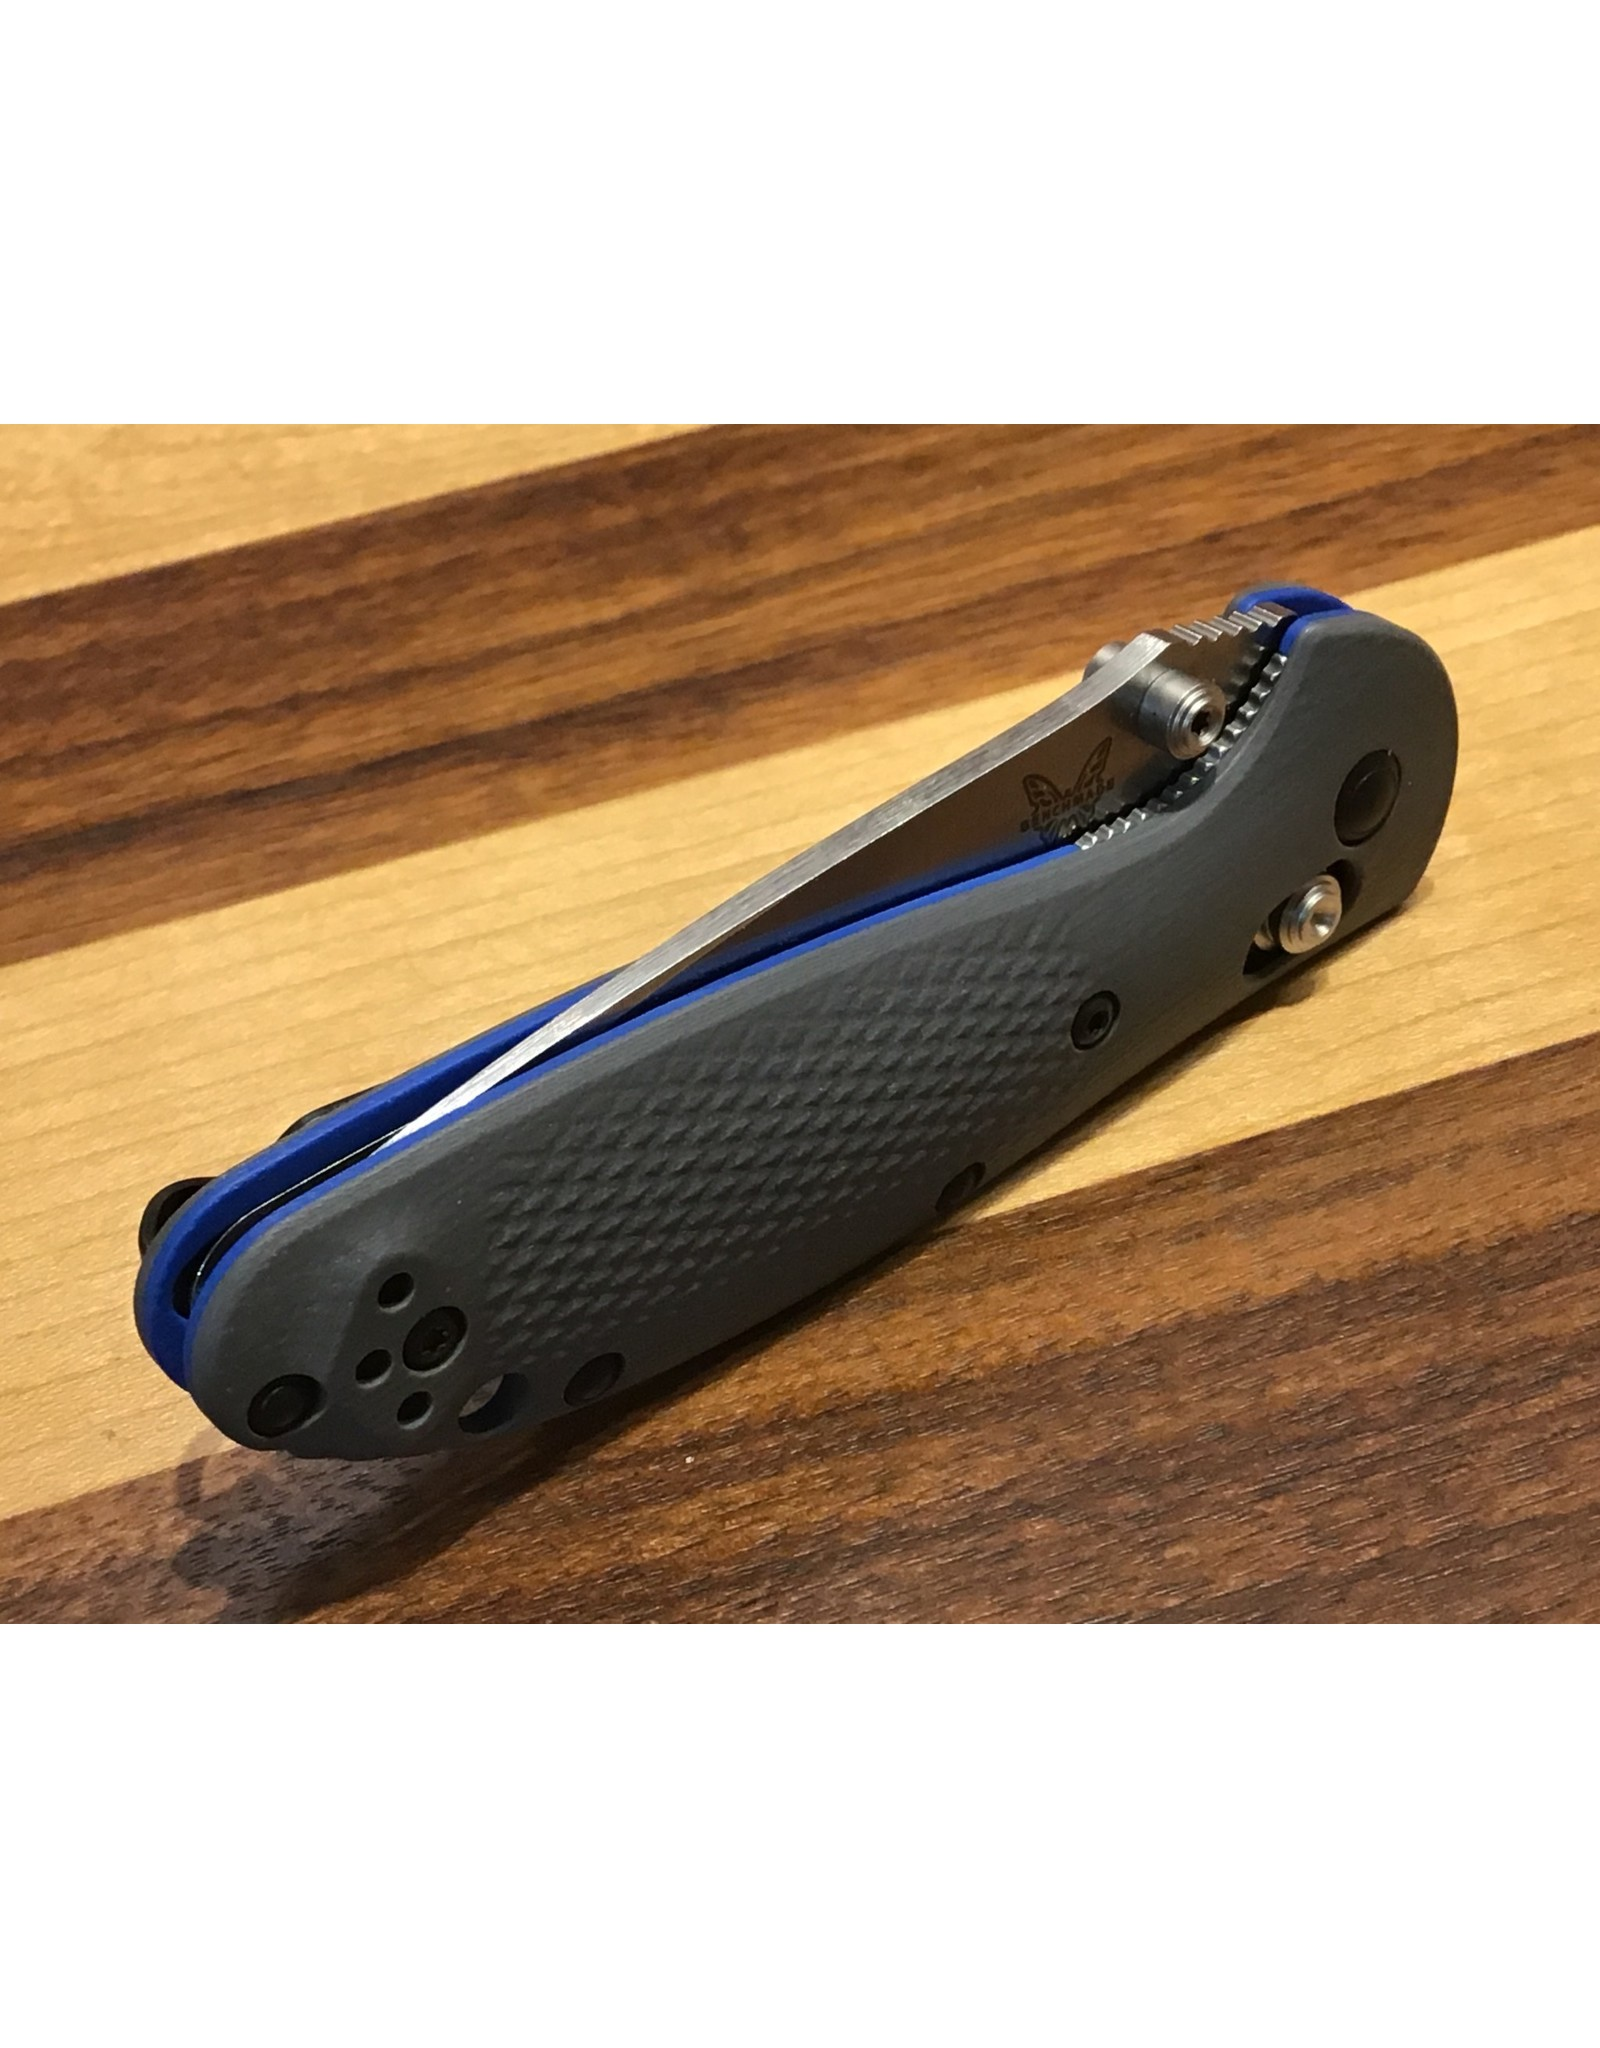 Benchmade Mini Griptilian UPGRADED CPM20CV with Blue & Grey G-10